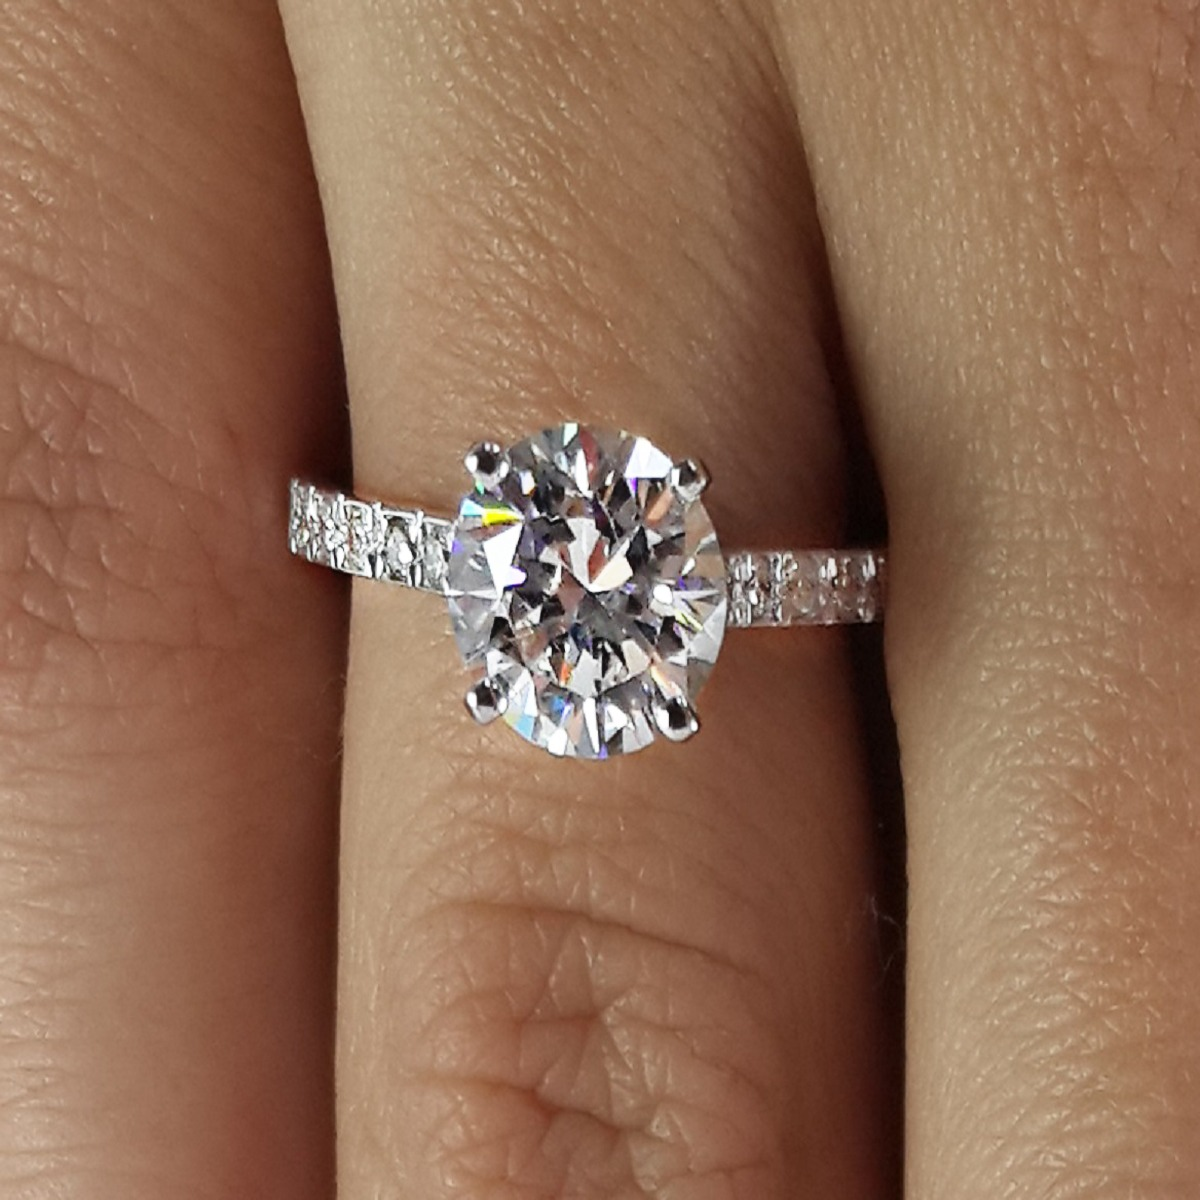 on ring engagement diamond man finger wedding profile low solitaire rings rose carat